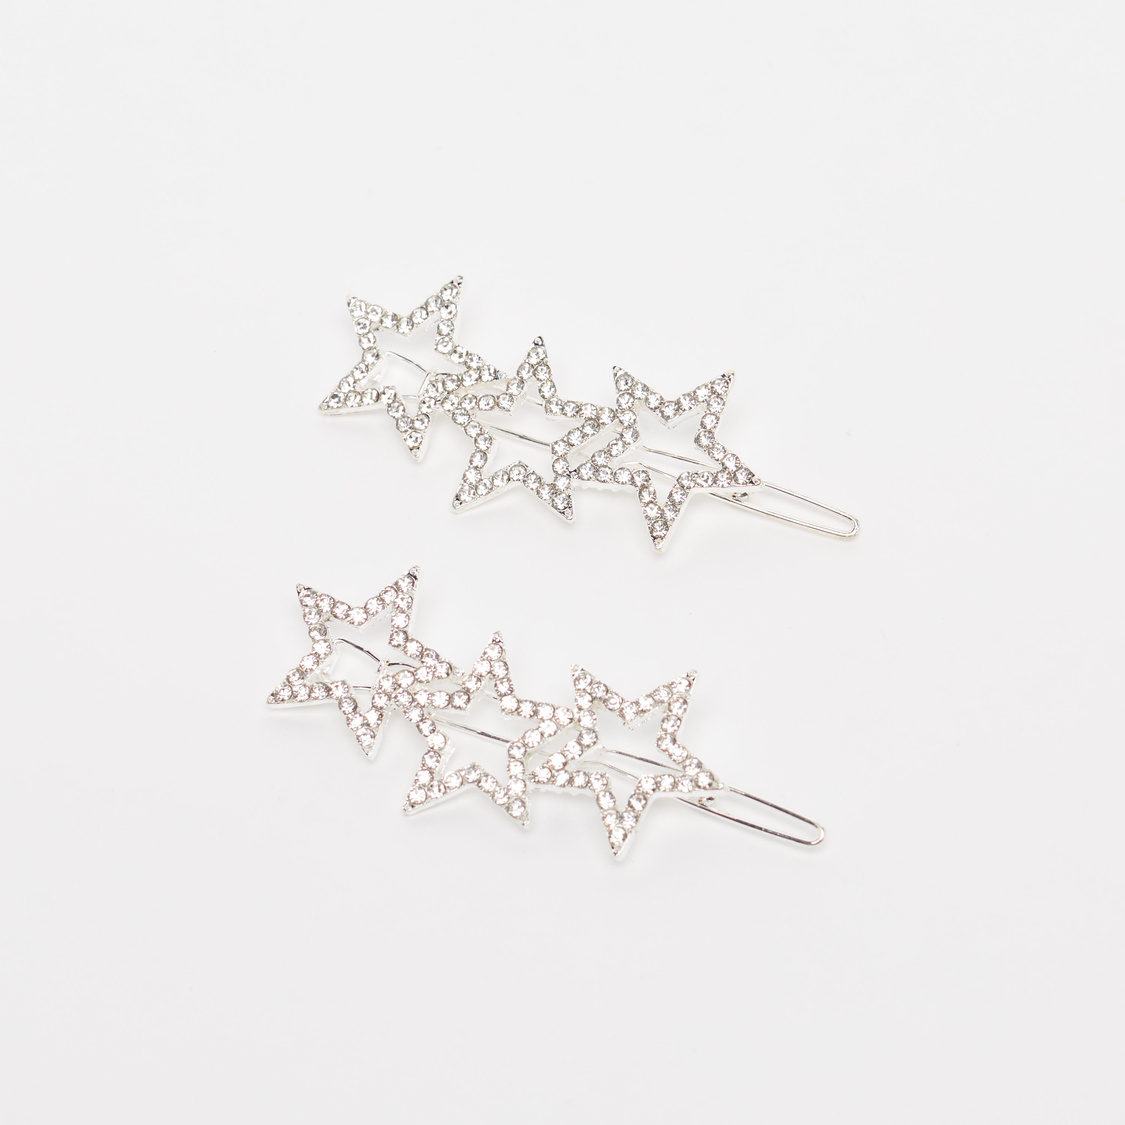 2-Piece Stone Studded Star Shaped Hair Clips